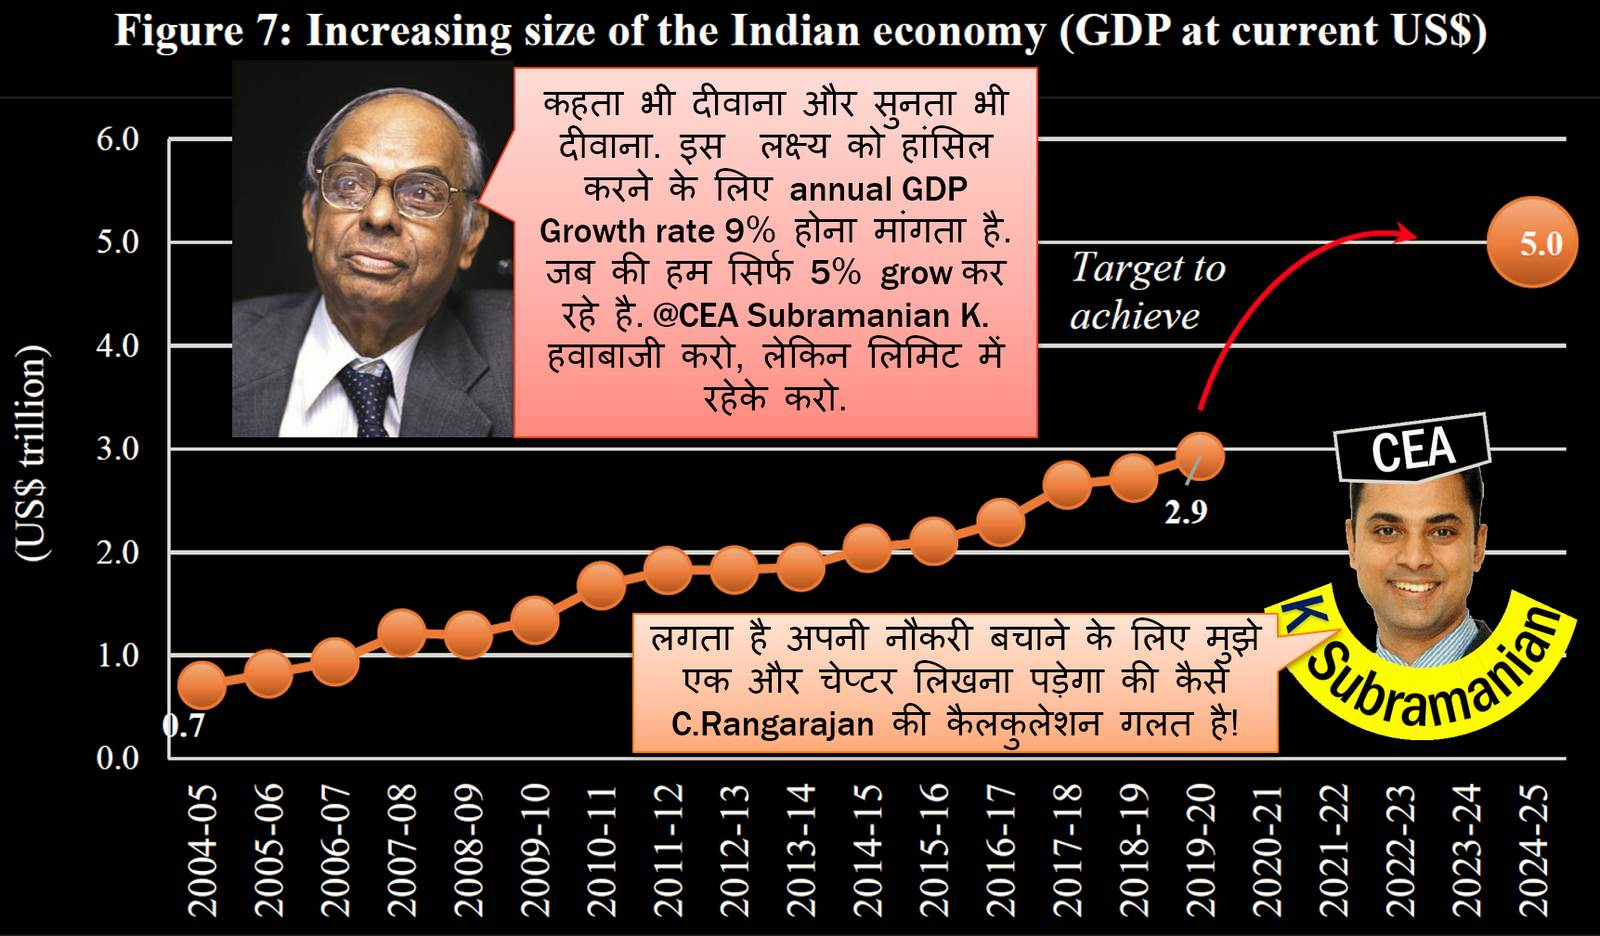 5 trillion dollar Indian economy target by 2025 Mrunal